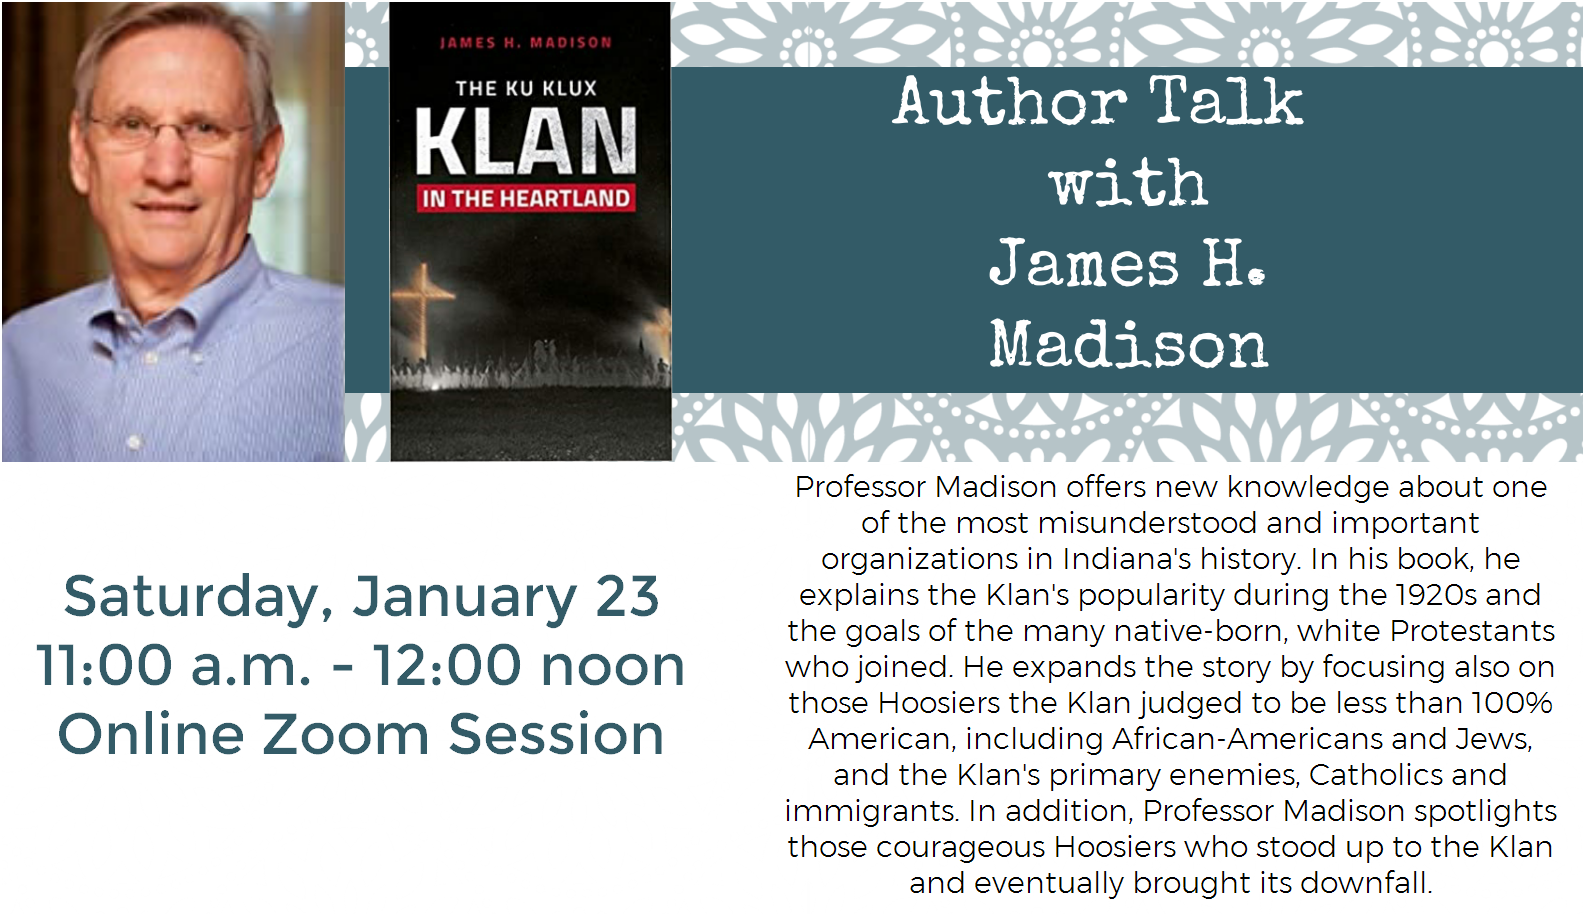 Author Talk with James H. Madison